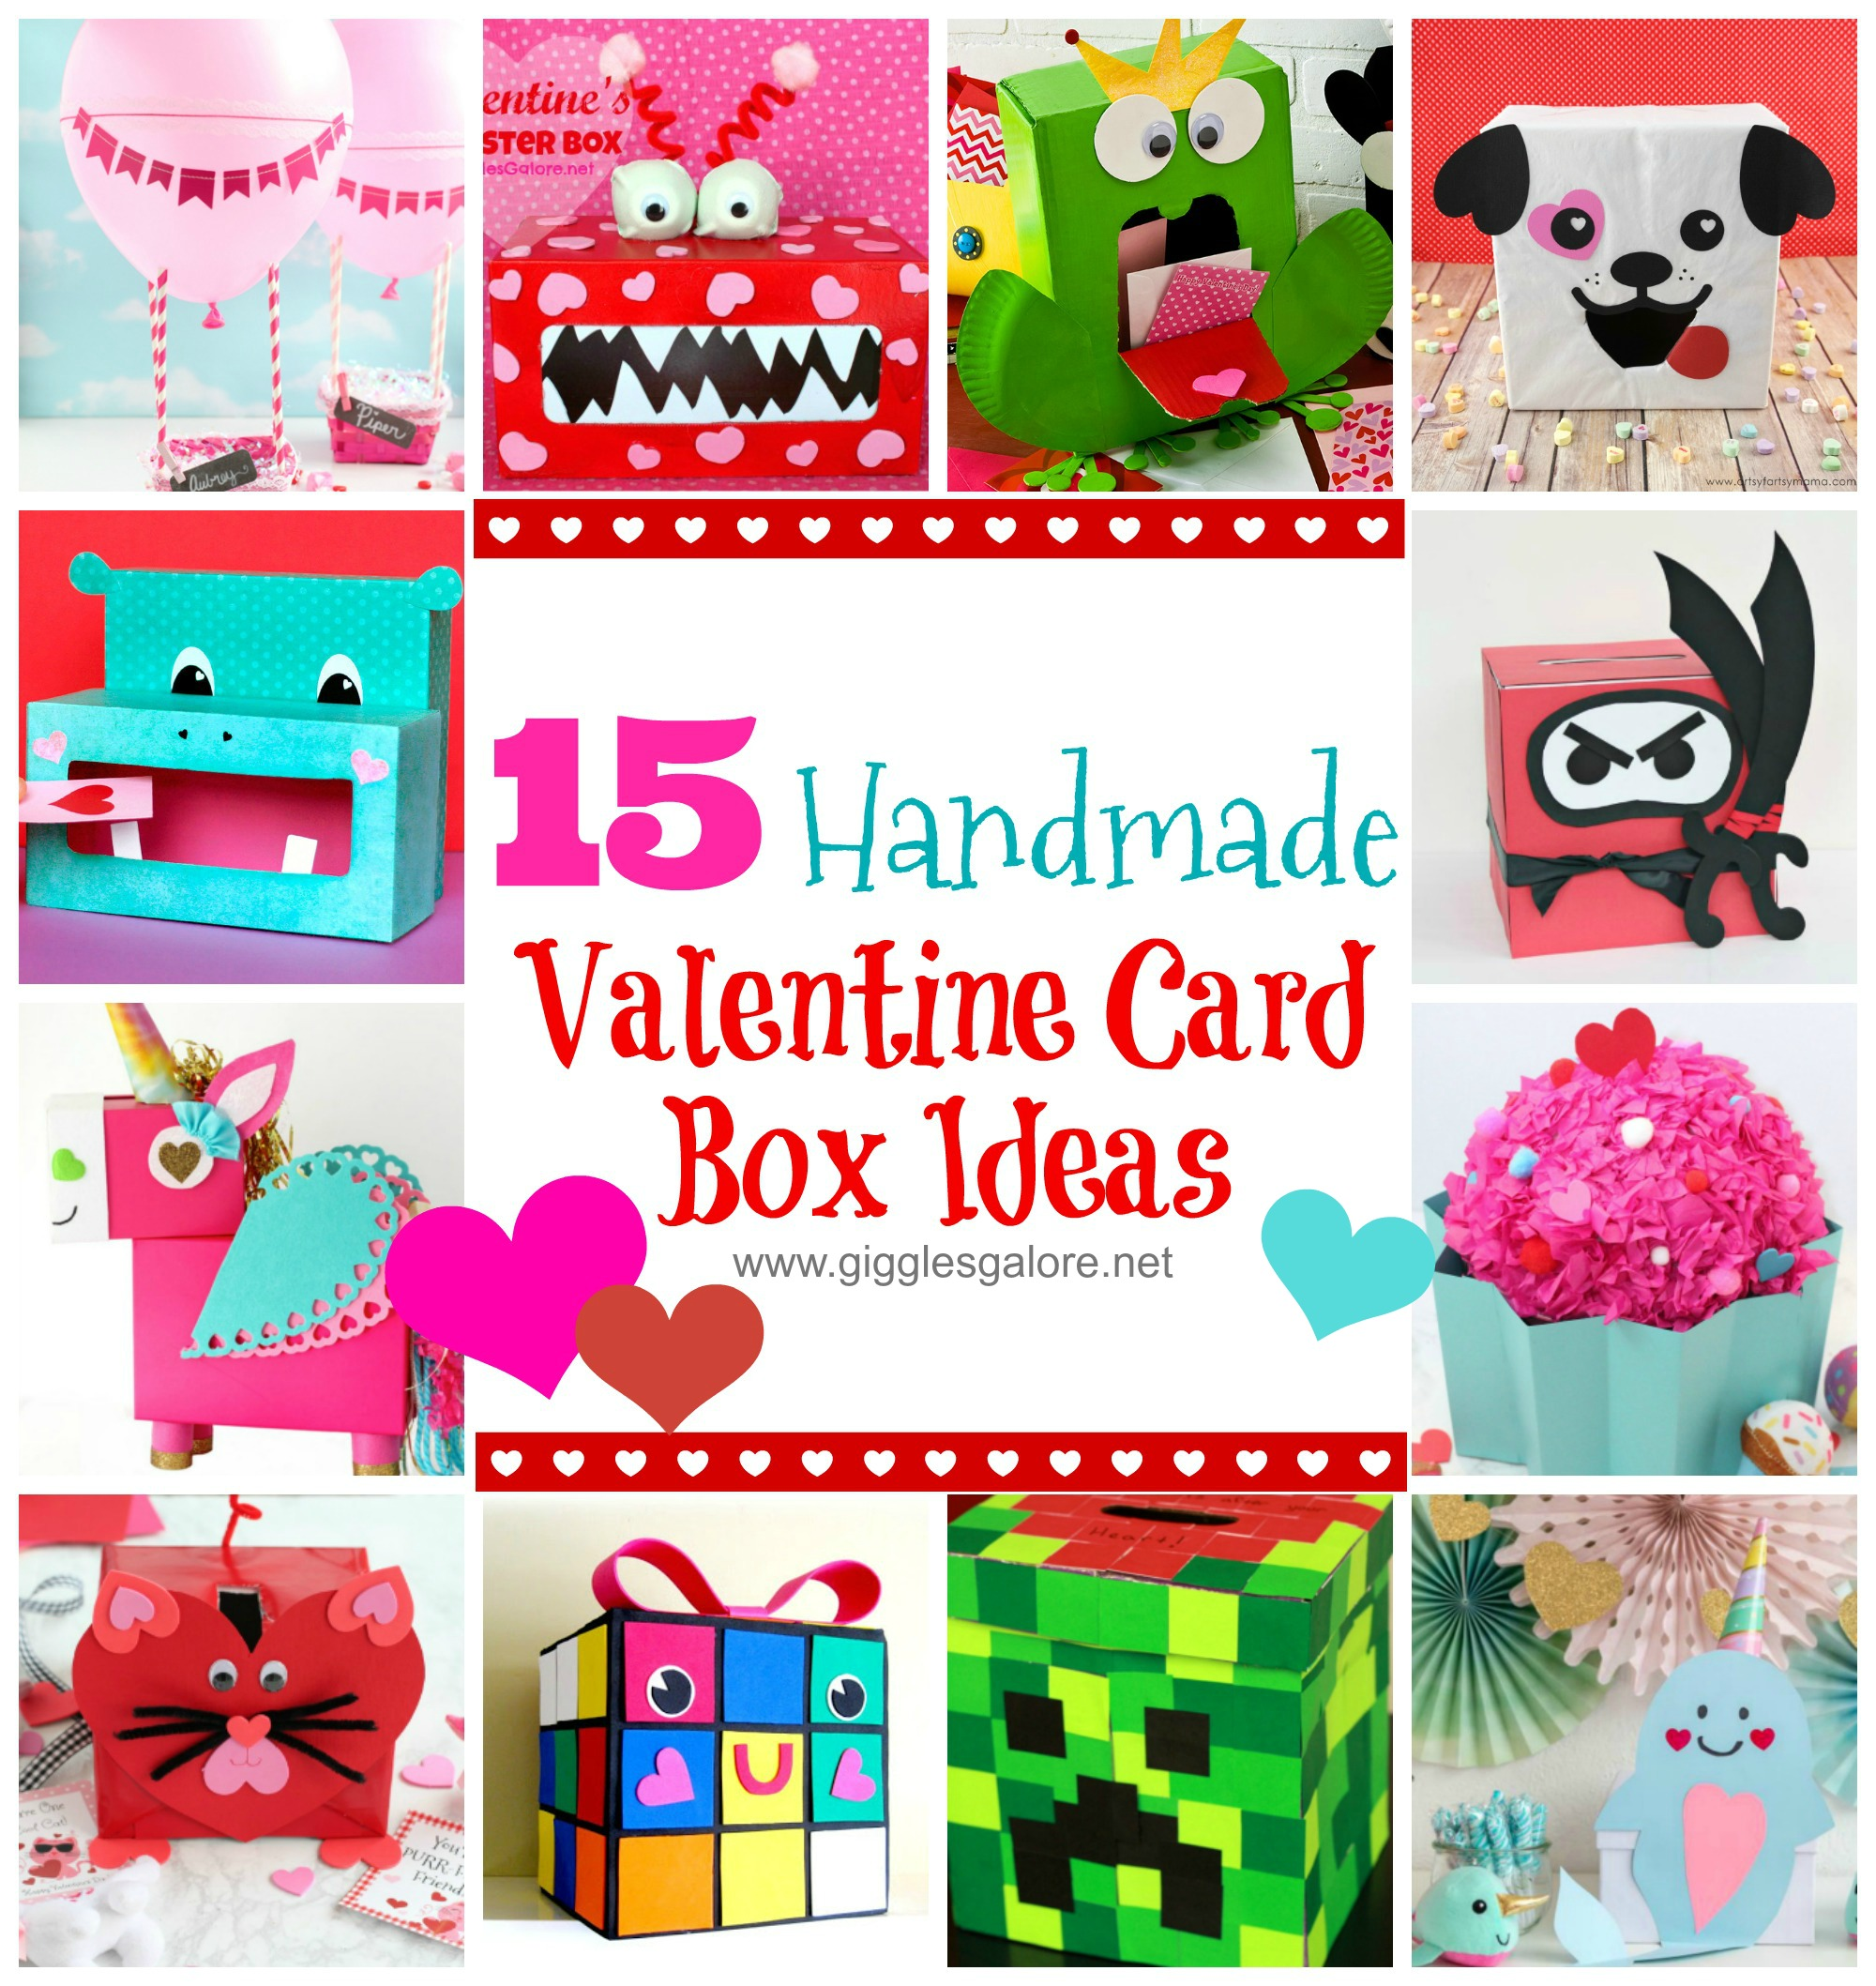 picture about Minecraft Valentine Box Printable known as 15 Do-it-yourself Valentine Box Plans for College or university - Giggles Galore